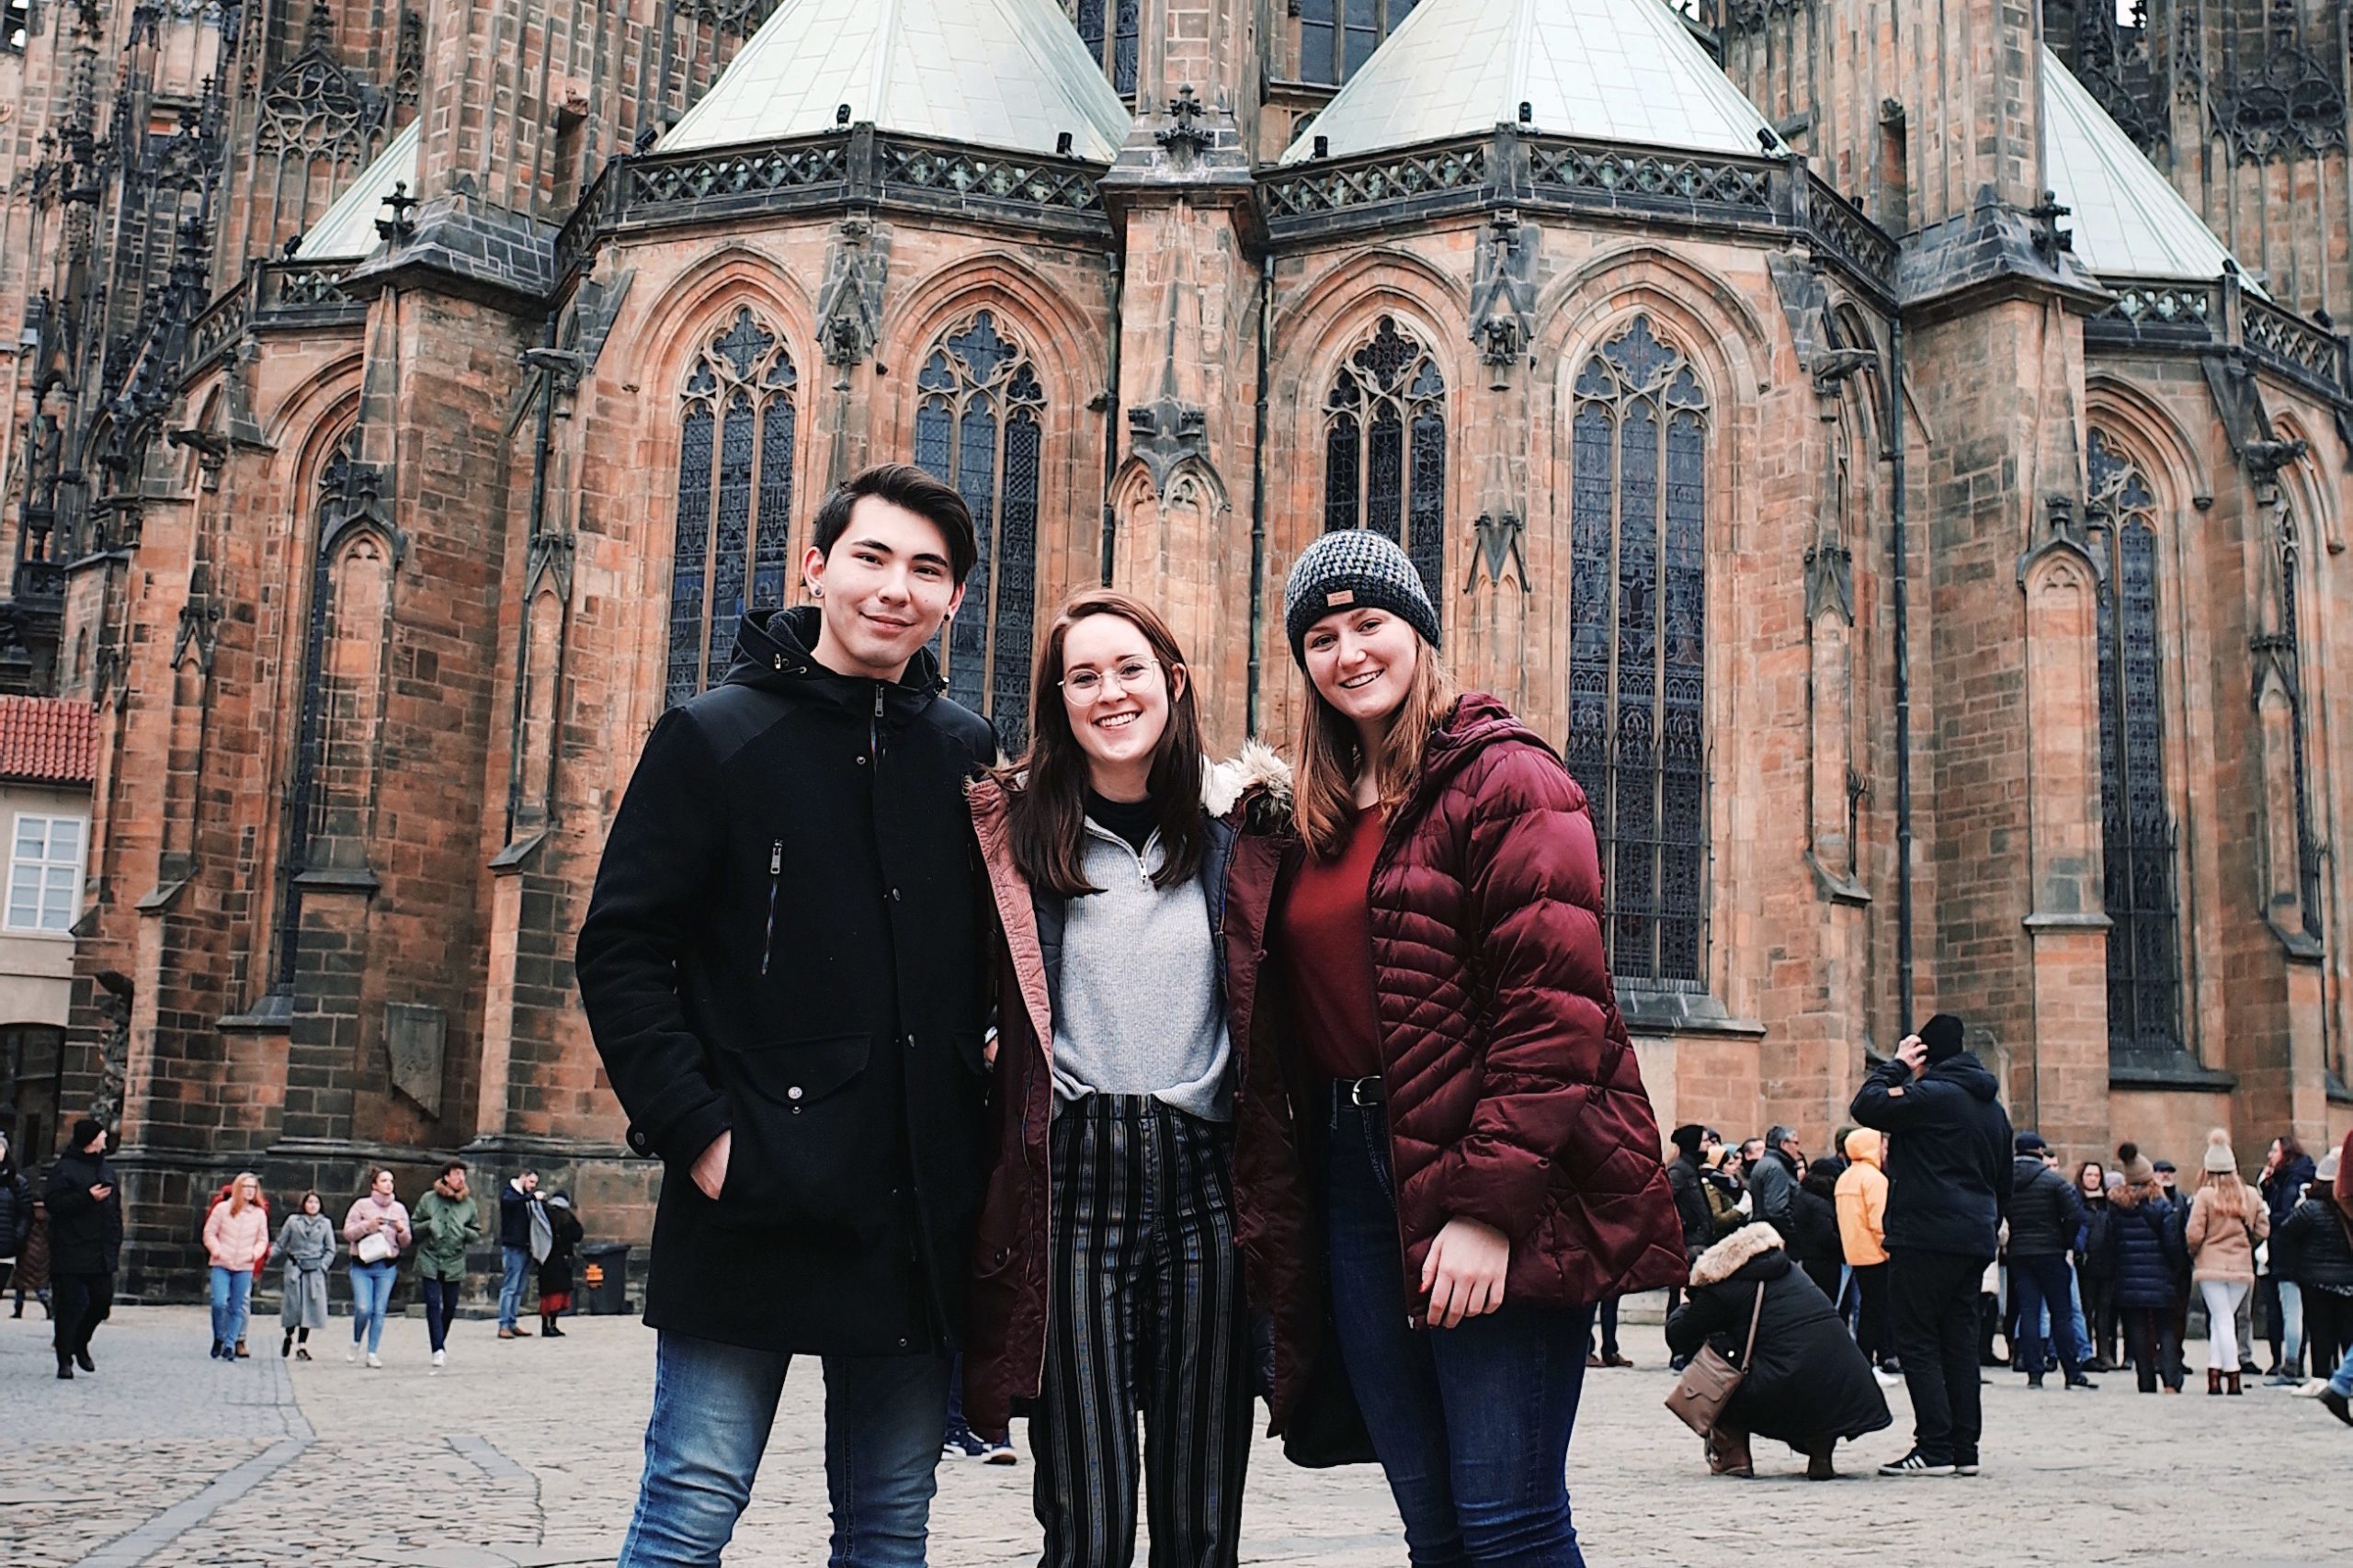 Jessica Butchley with friends in Berlin, Germany